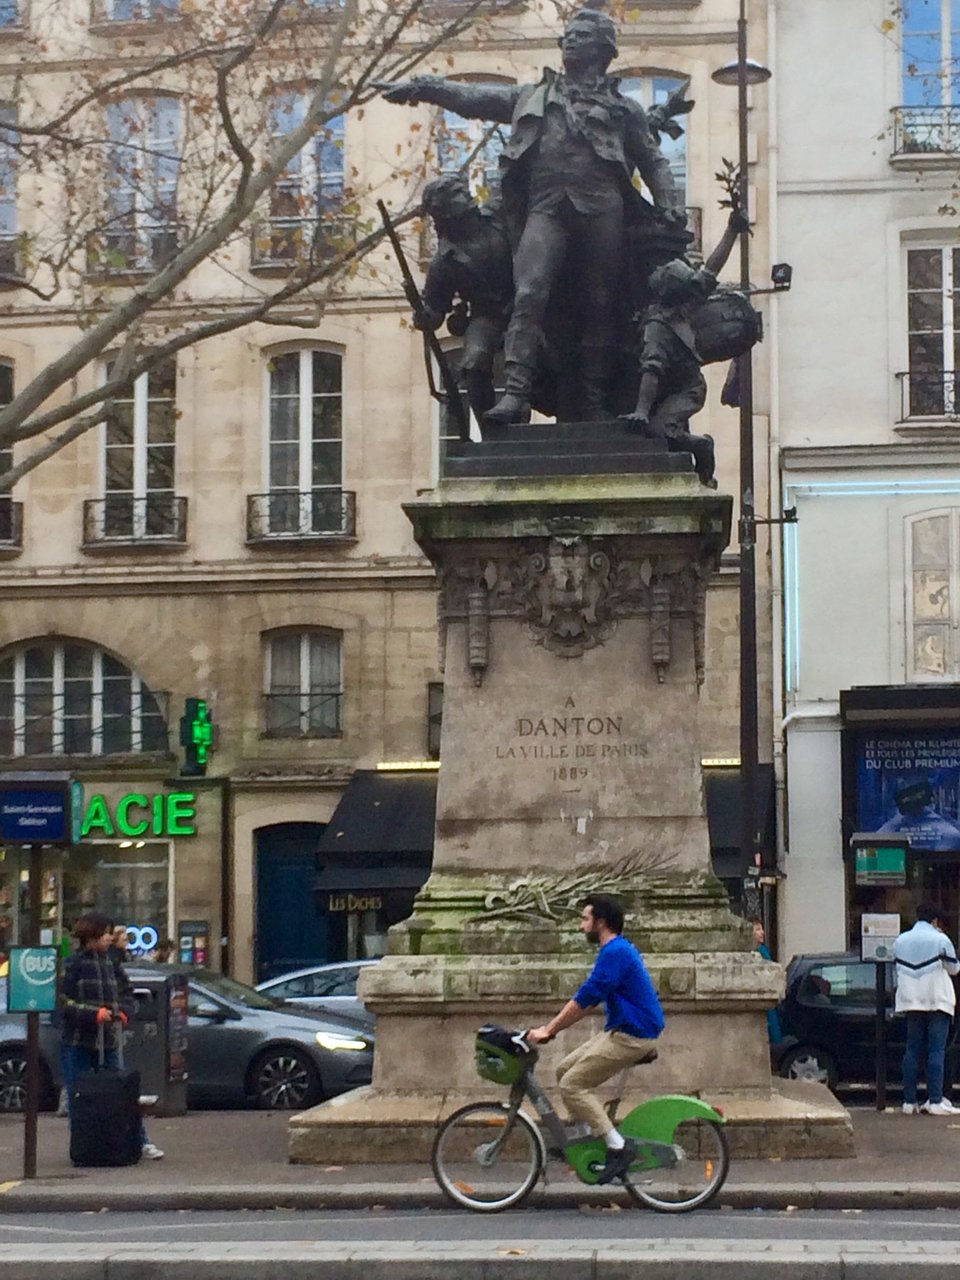 Georges Danton statue of danton (paris) - 2020 all you need to know before